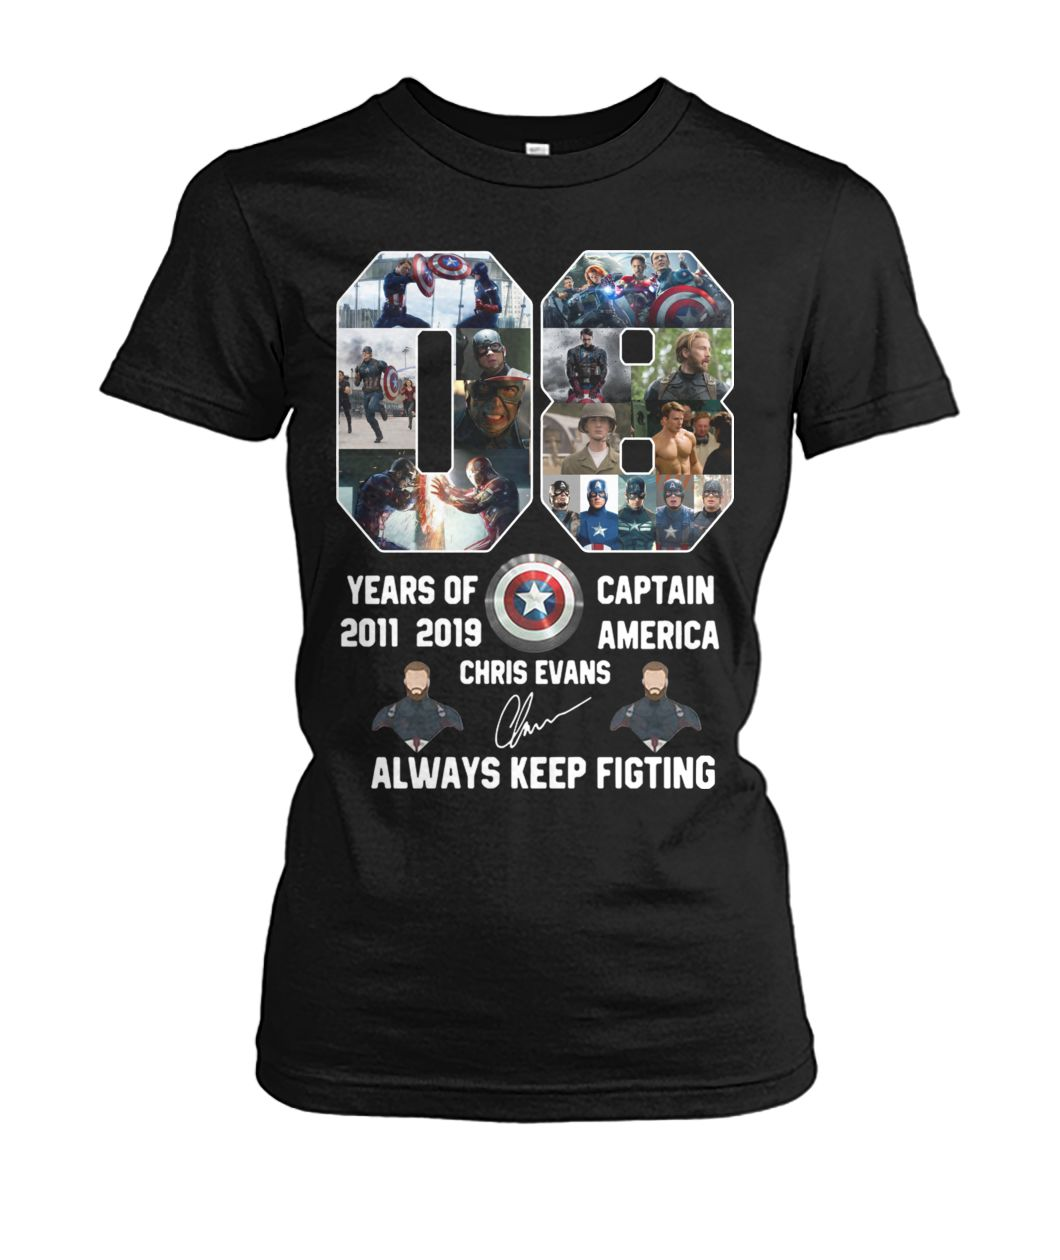 08 years of captain america 2011 2019 chris evans signature always keep fighting women's crew tee